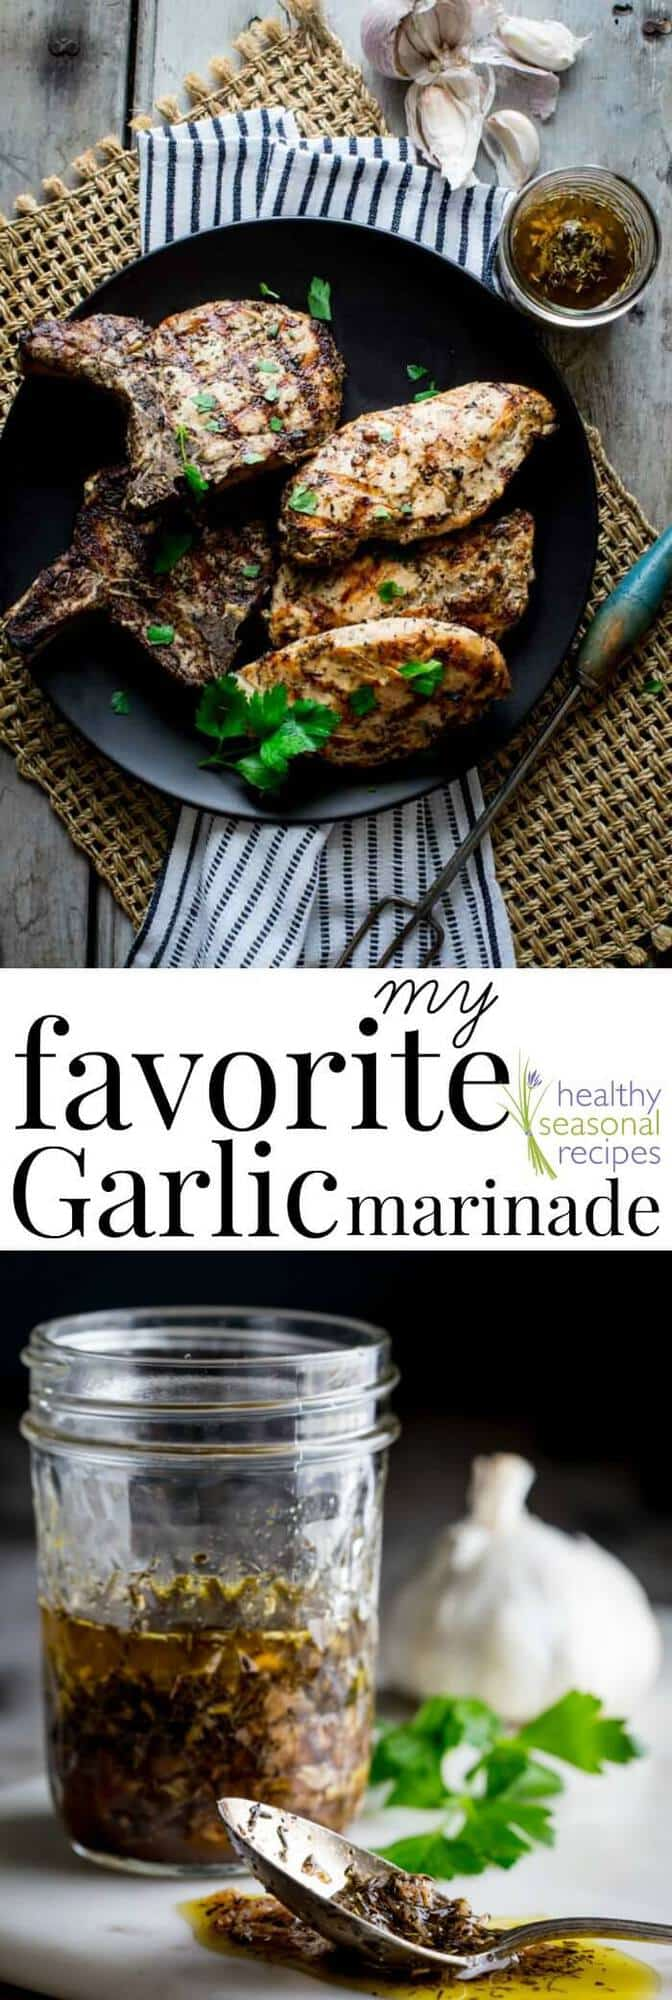 My Favorite Garlic Marinade | Toss any protein you like into this simple marinade and prepare to be wowed! No chopping, no mess- try this technique (all made in a bag) and you'll never need another marinade recipe again! It works with tofu, shrimp, fish, beef chicken and pork! Healthy Seasonal Recipes #marinade #garlic #glutenfree #grilling